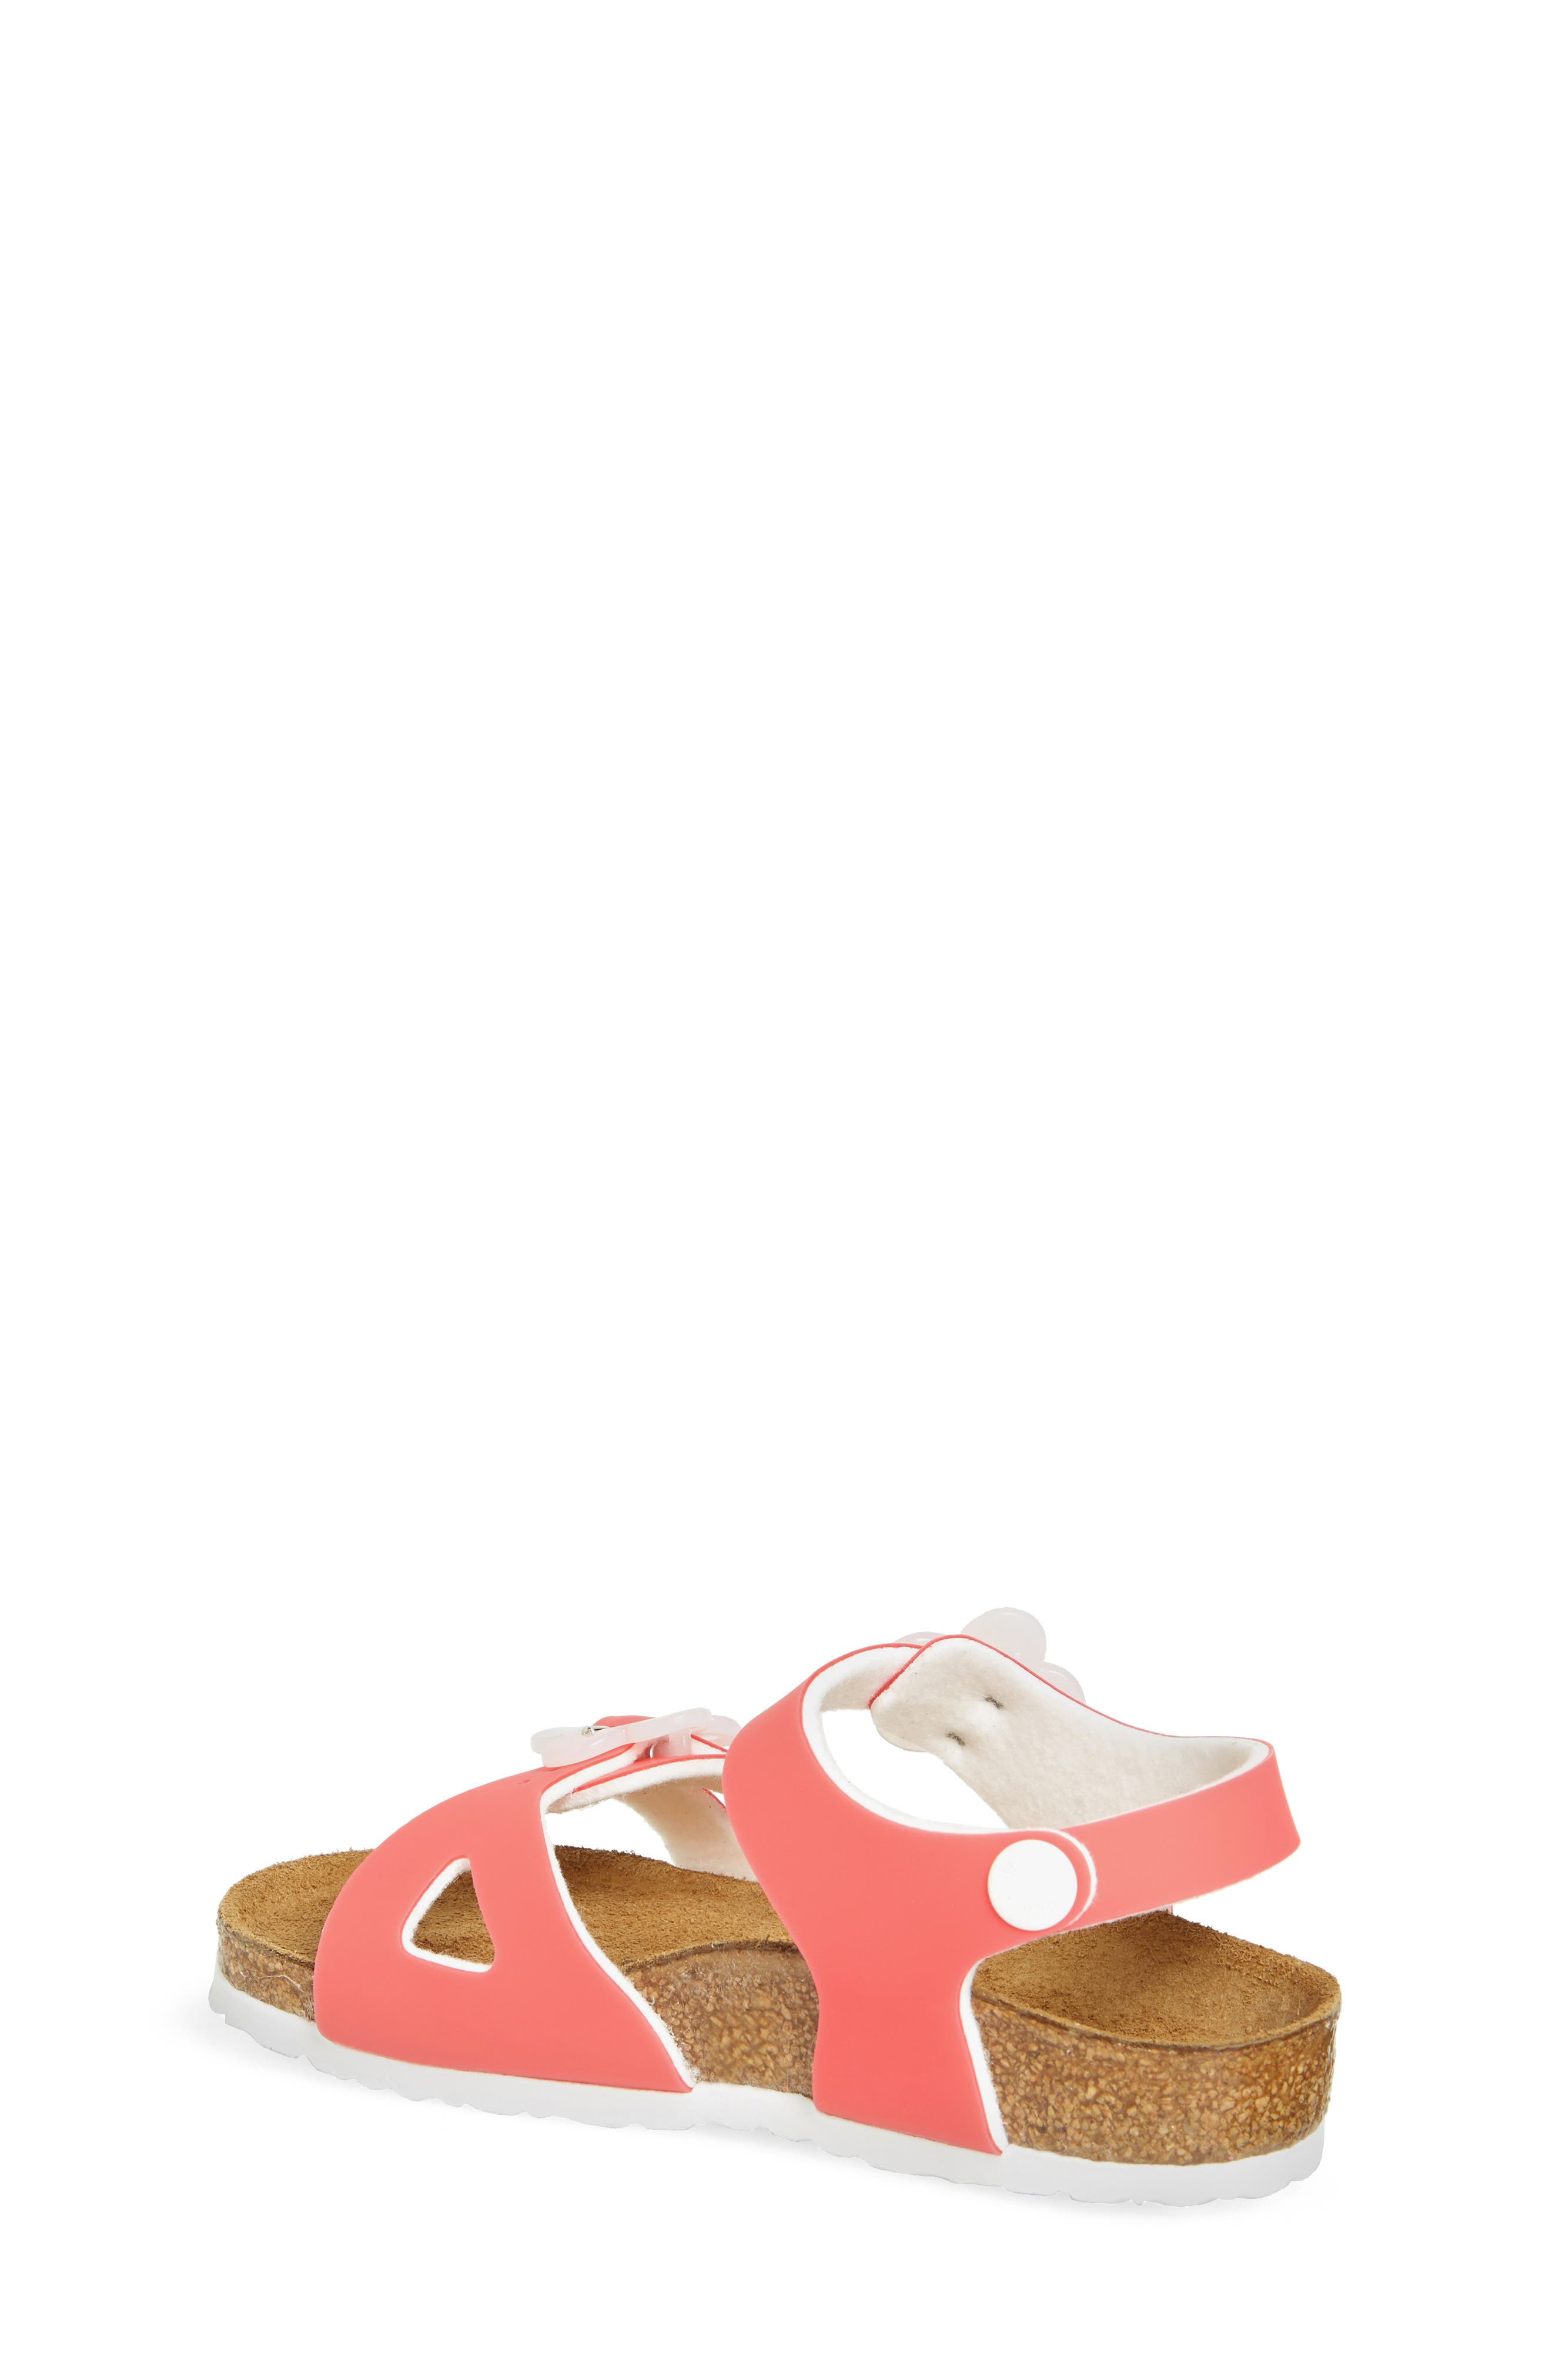 Rio Flowered Sandal,                             Alternate thumbnail 2, color,                             CANDY PINK